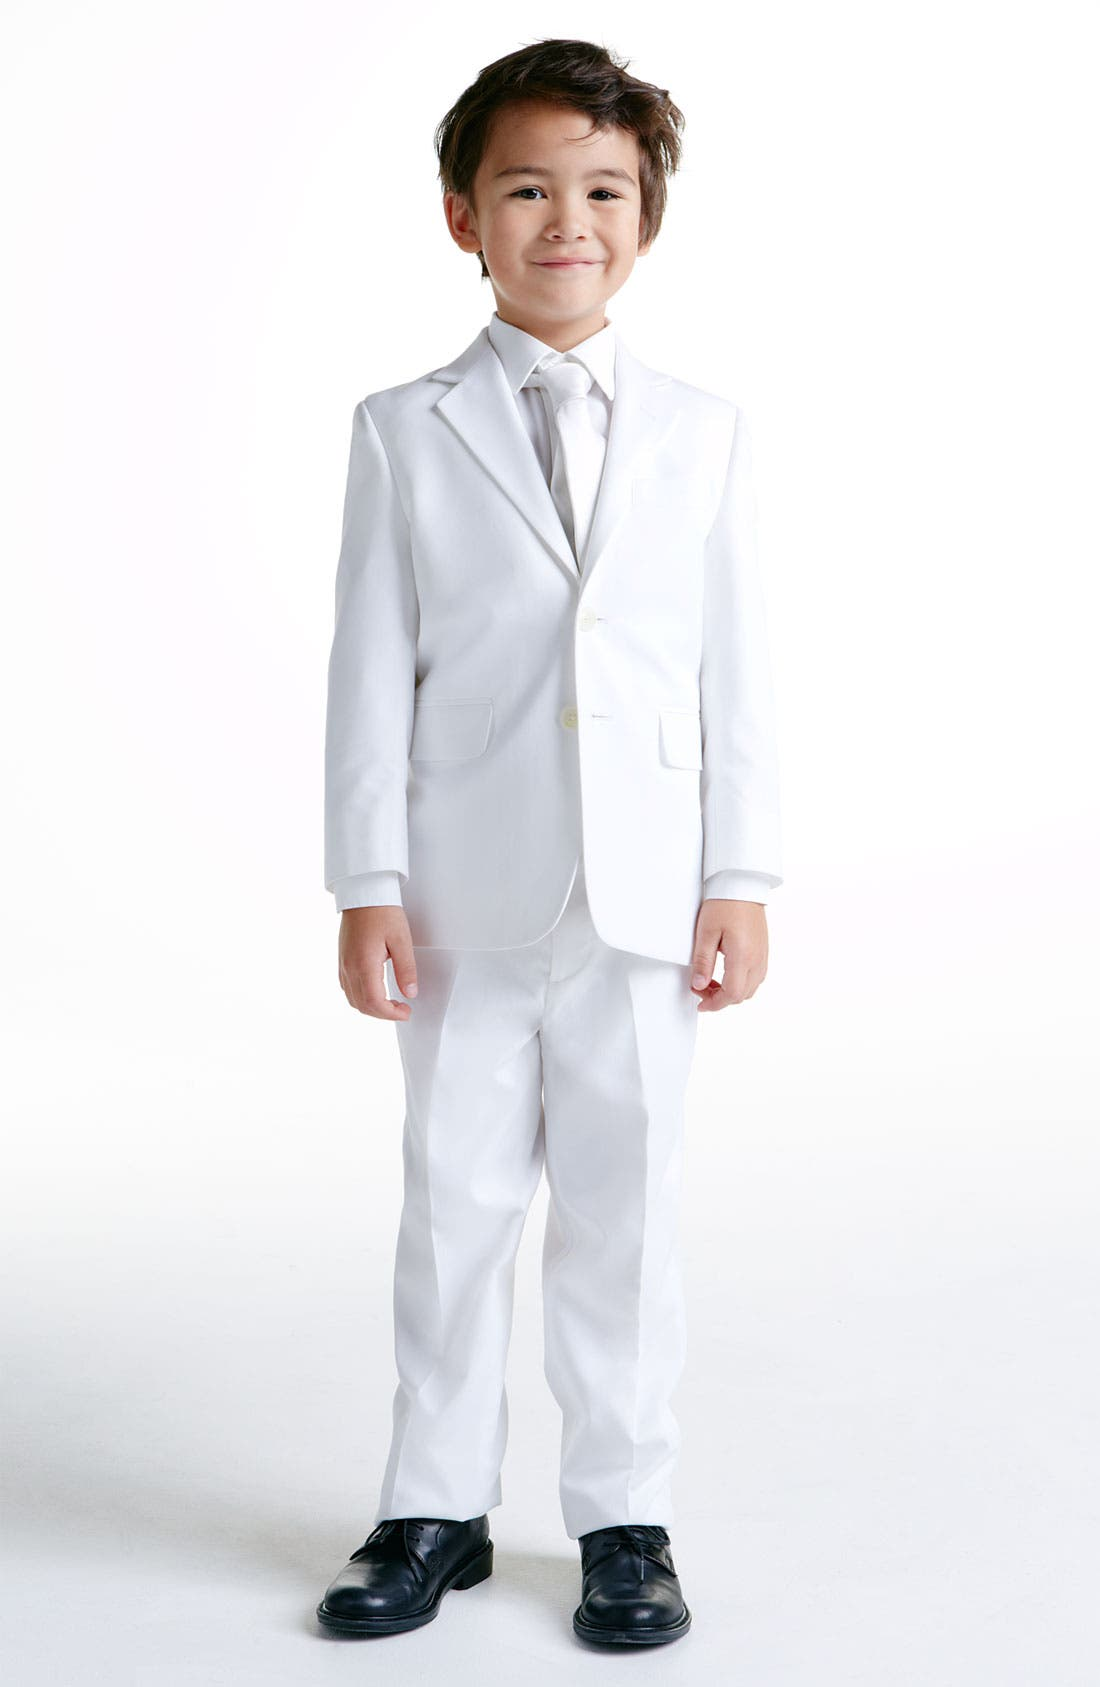 Main Image - Joseph Abboud Dress Jacket & Pants (Little Boys & Big Boys)